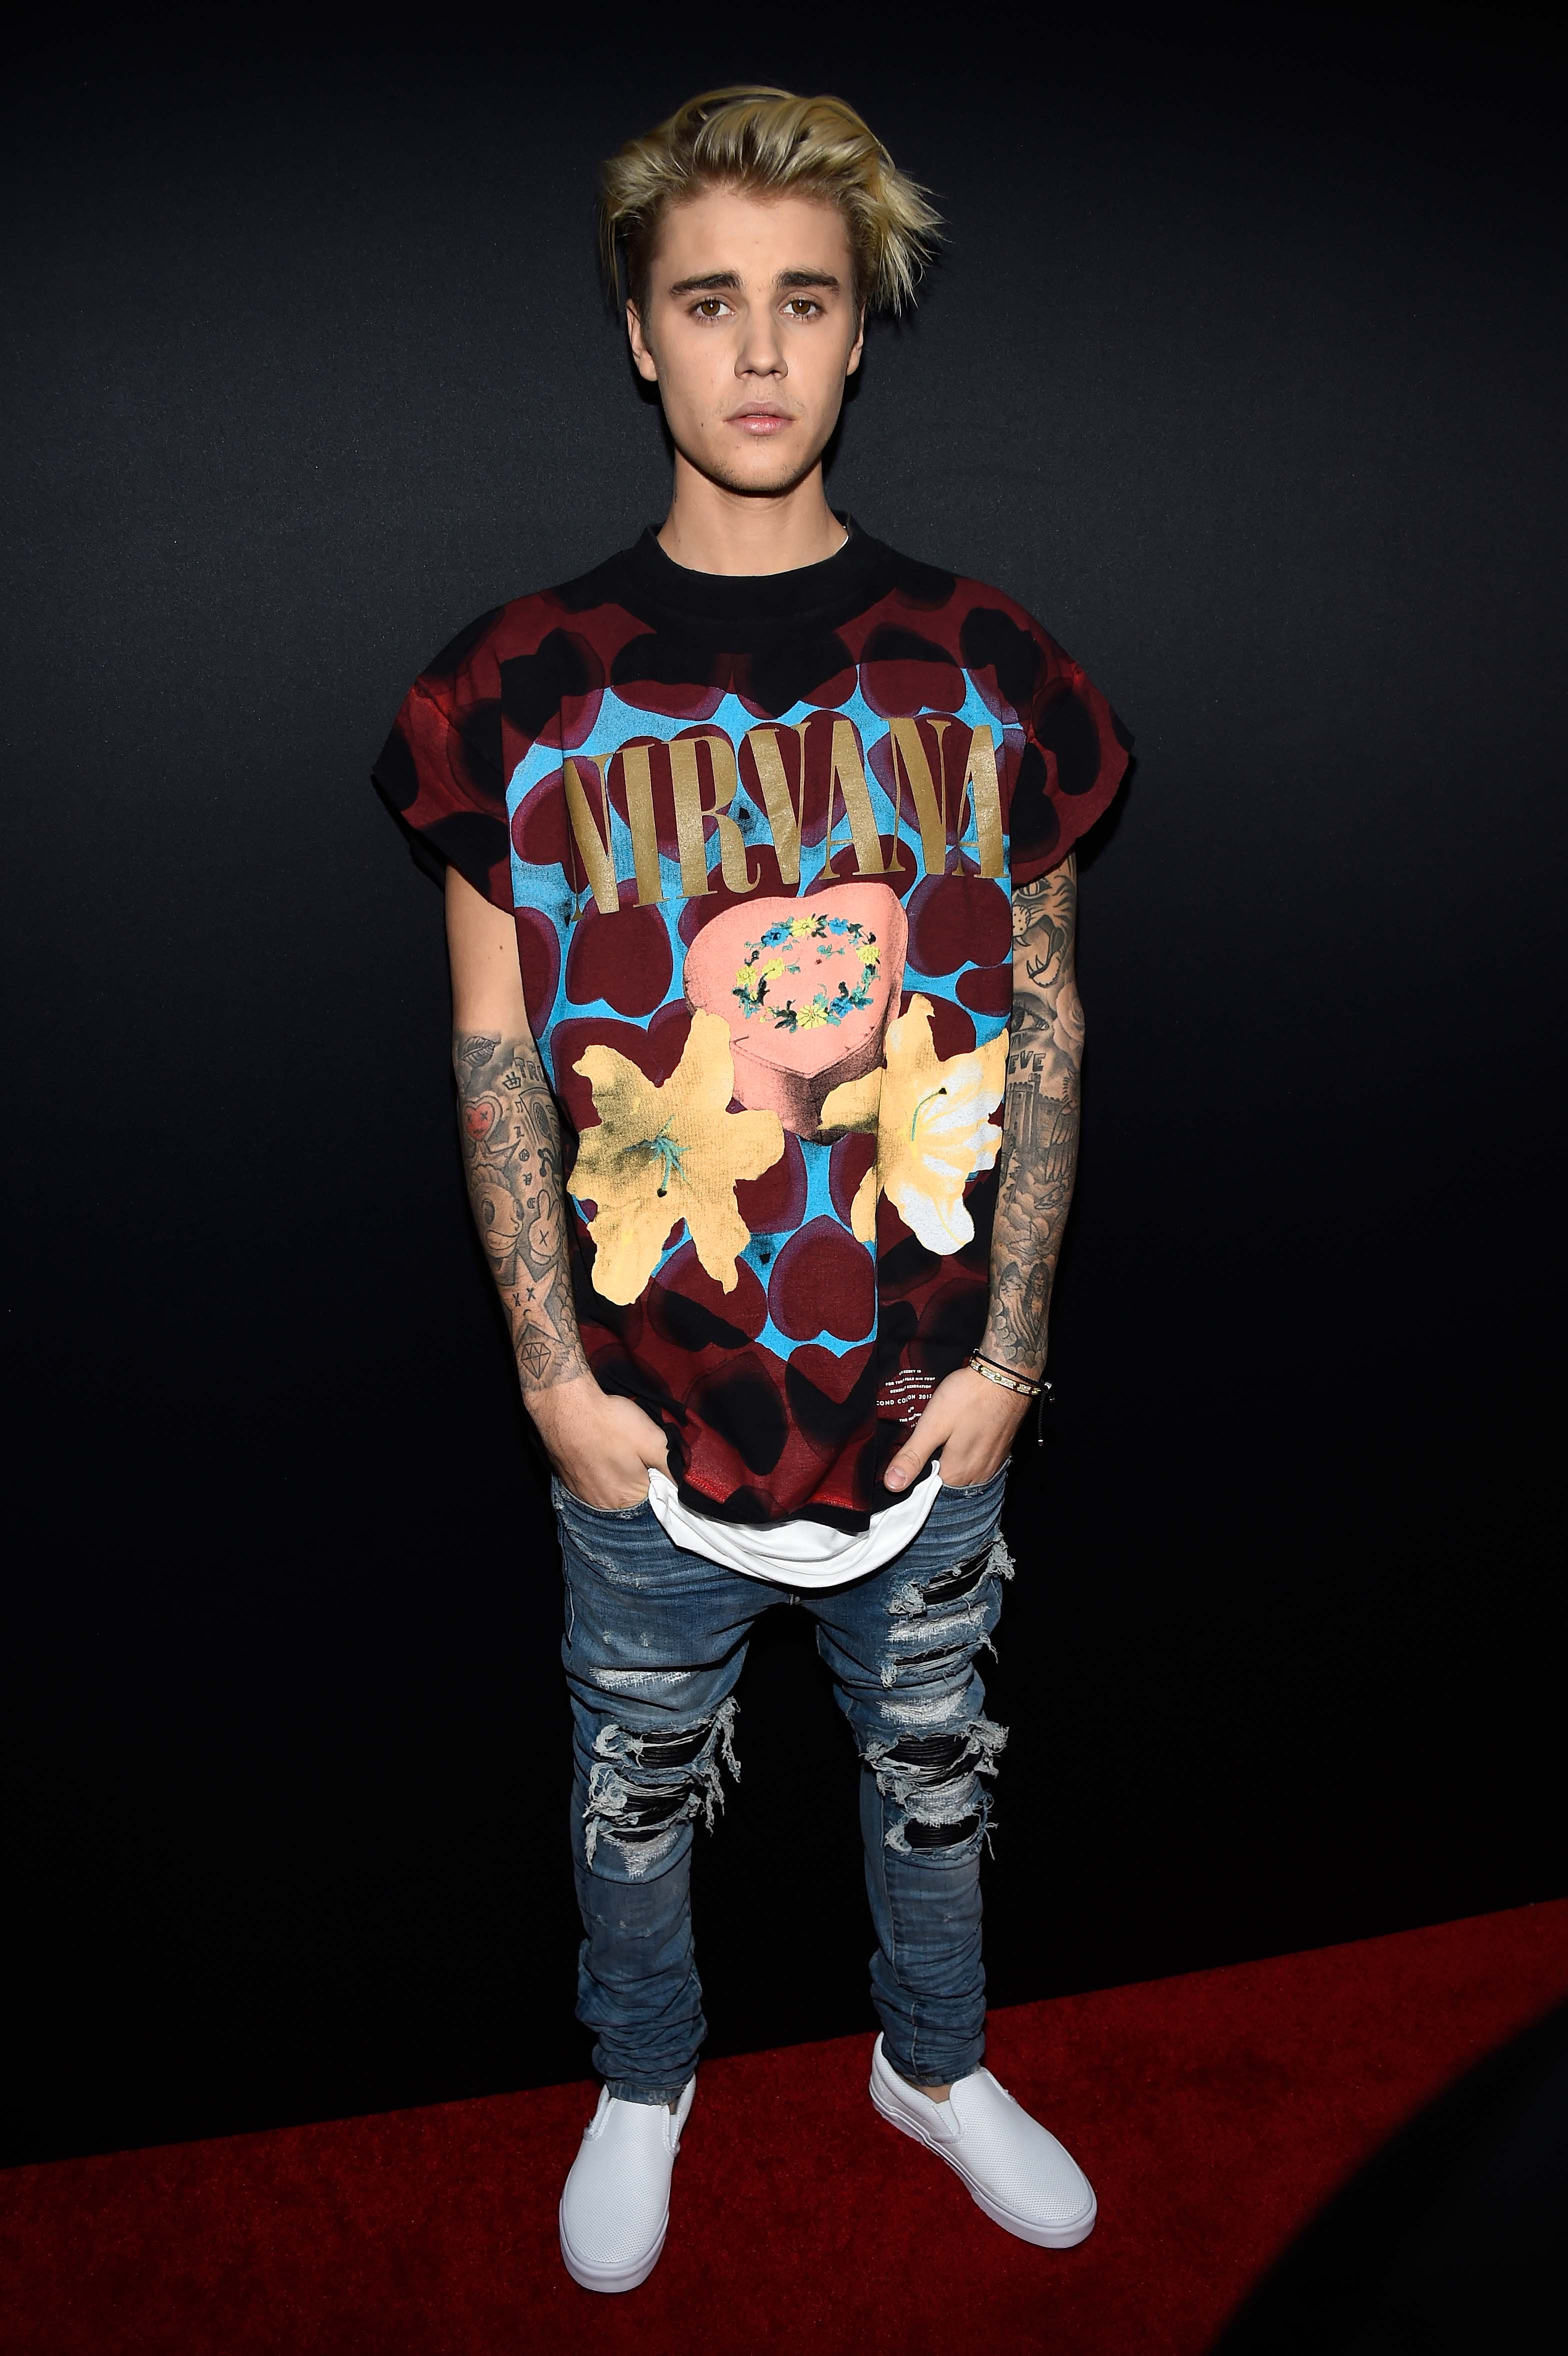 Every Photo You Need Of Justin Bieber At The 2015 AMAs